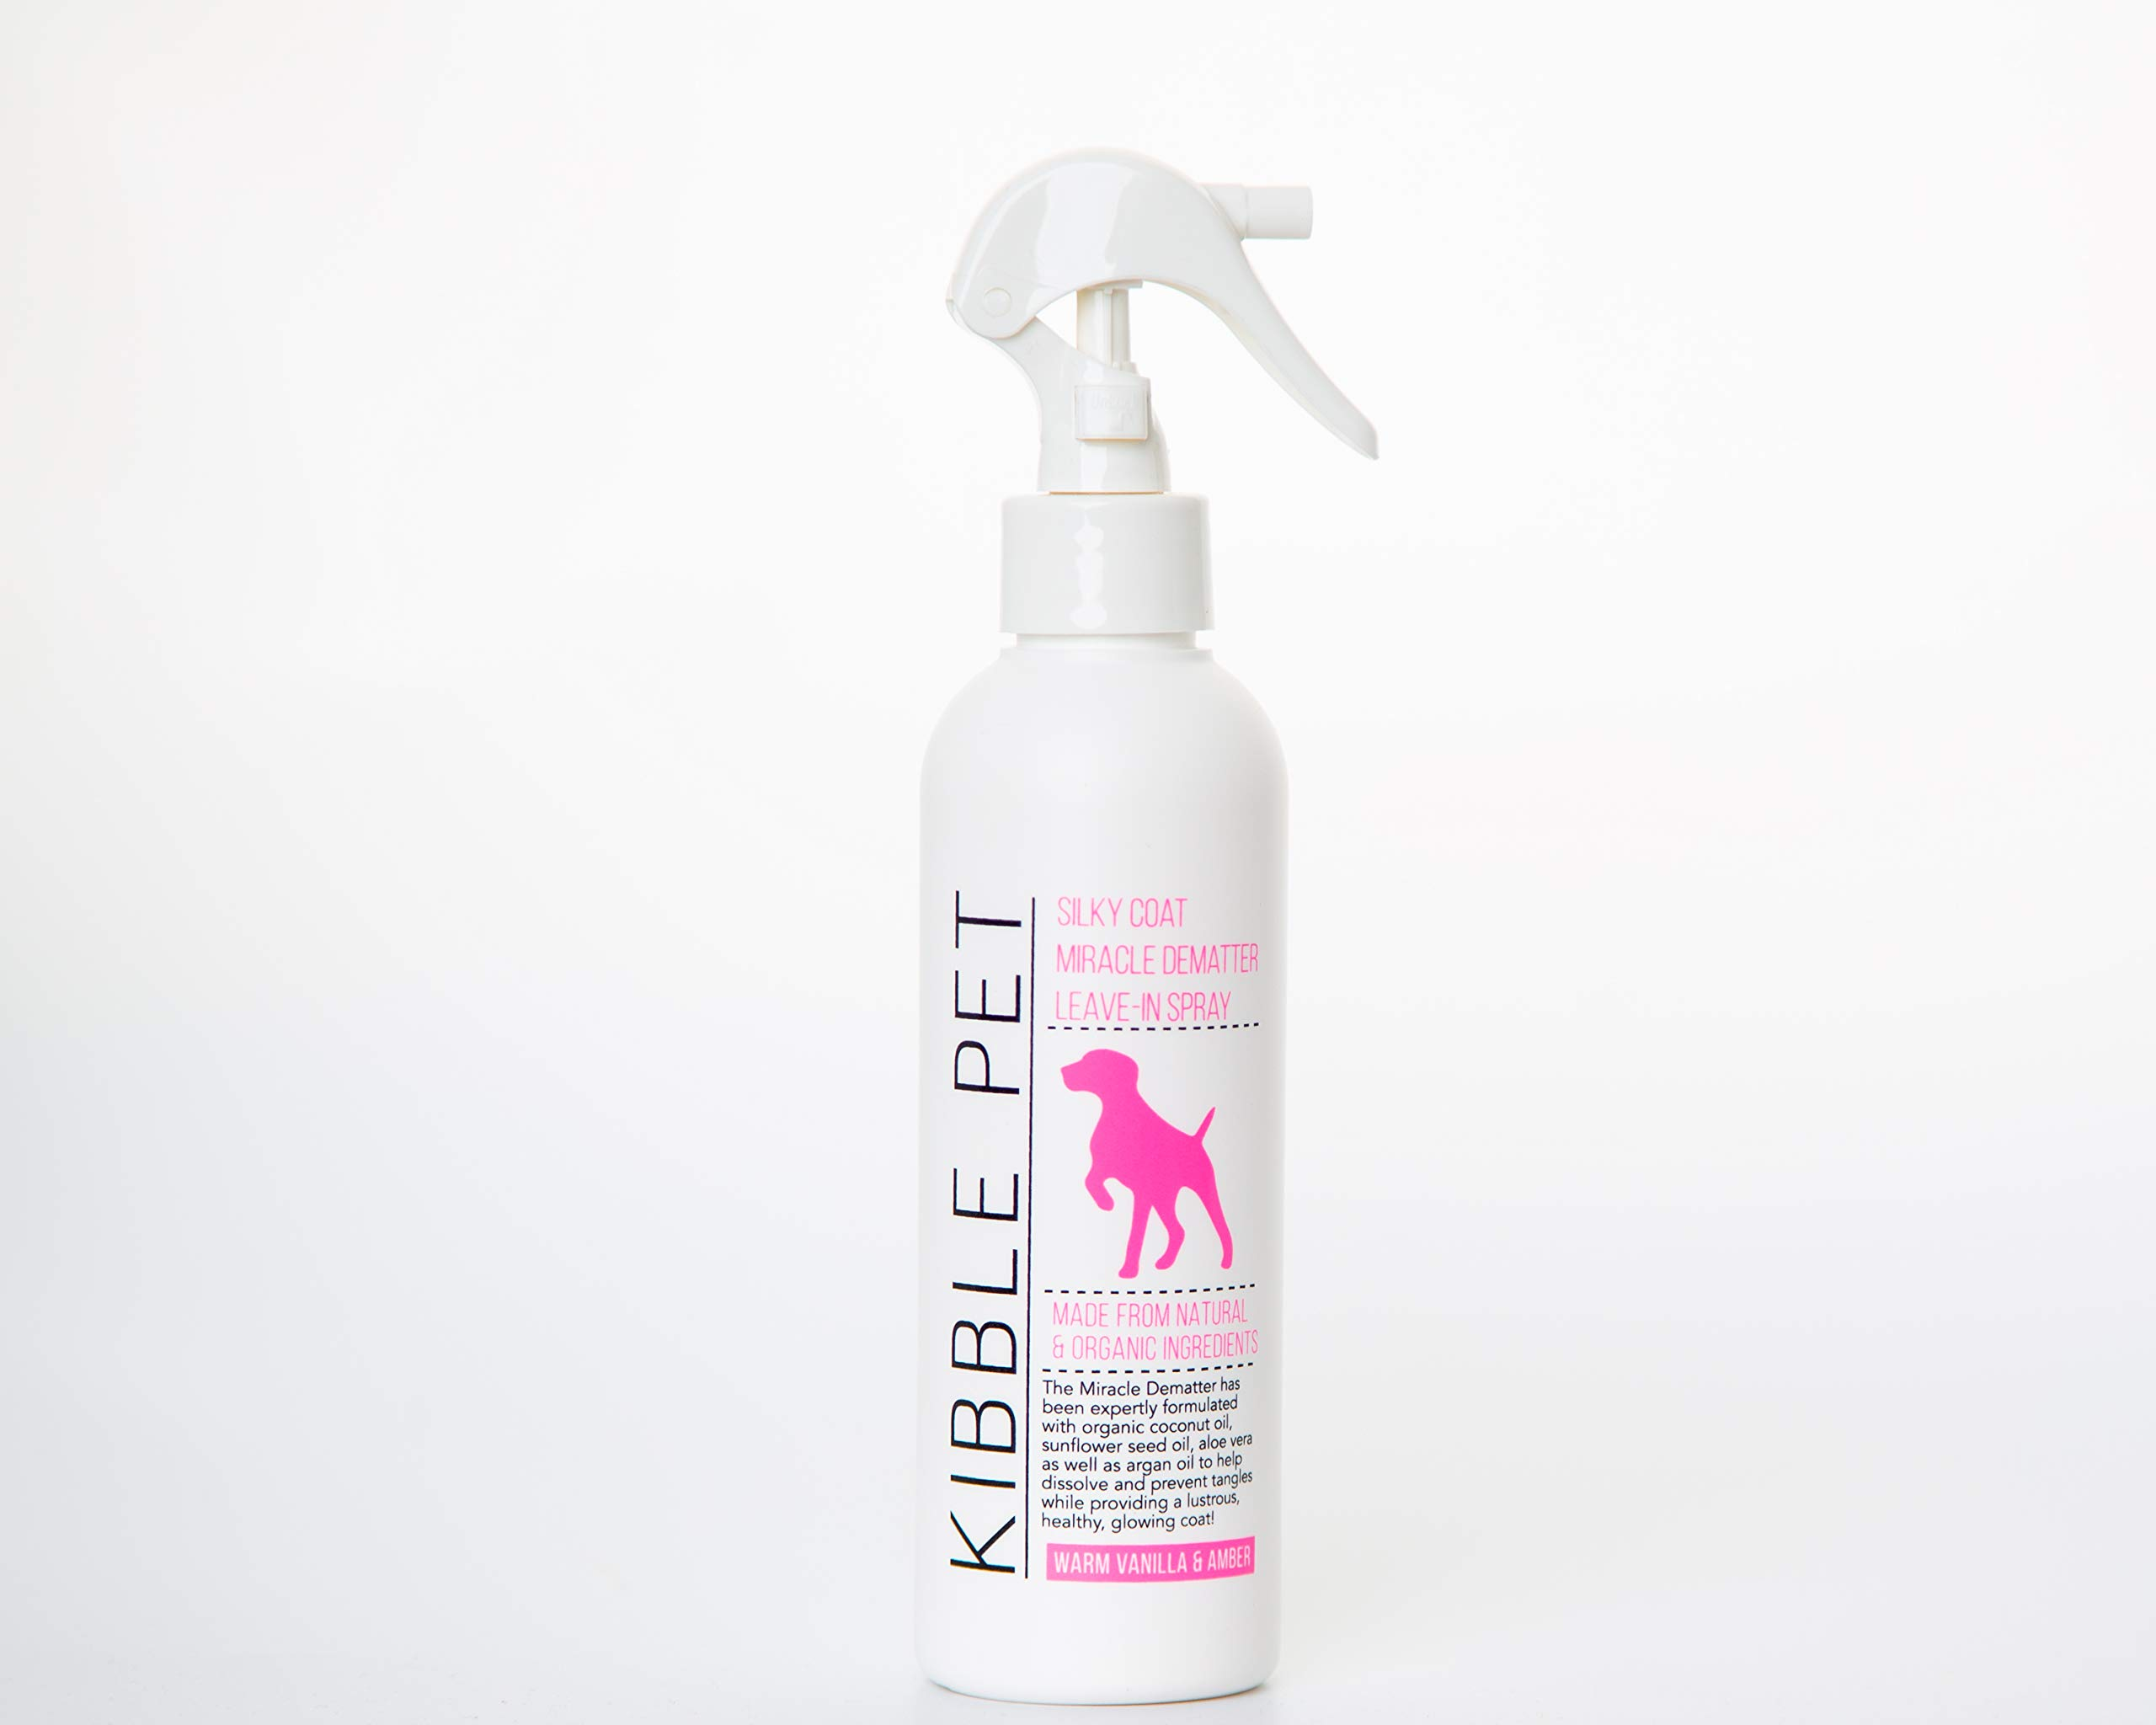 Kibble Pet Silky Coat Miracle Dematter Leave in Spray, Warm Vanilla and Amber (7.2 Ounces)